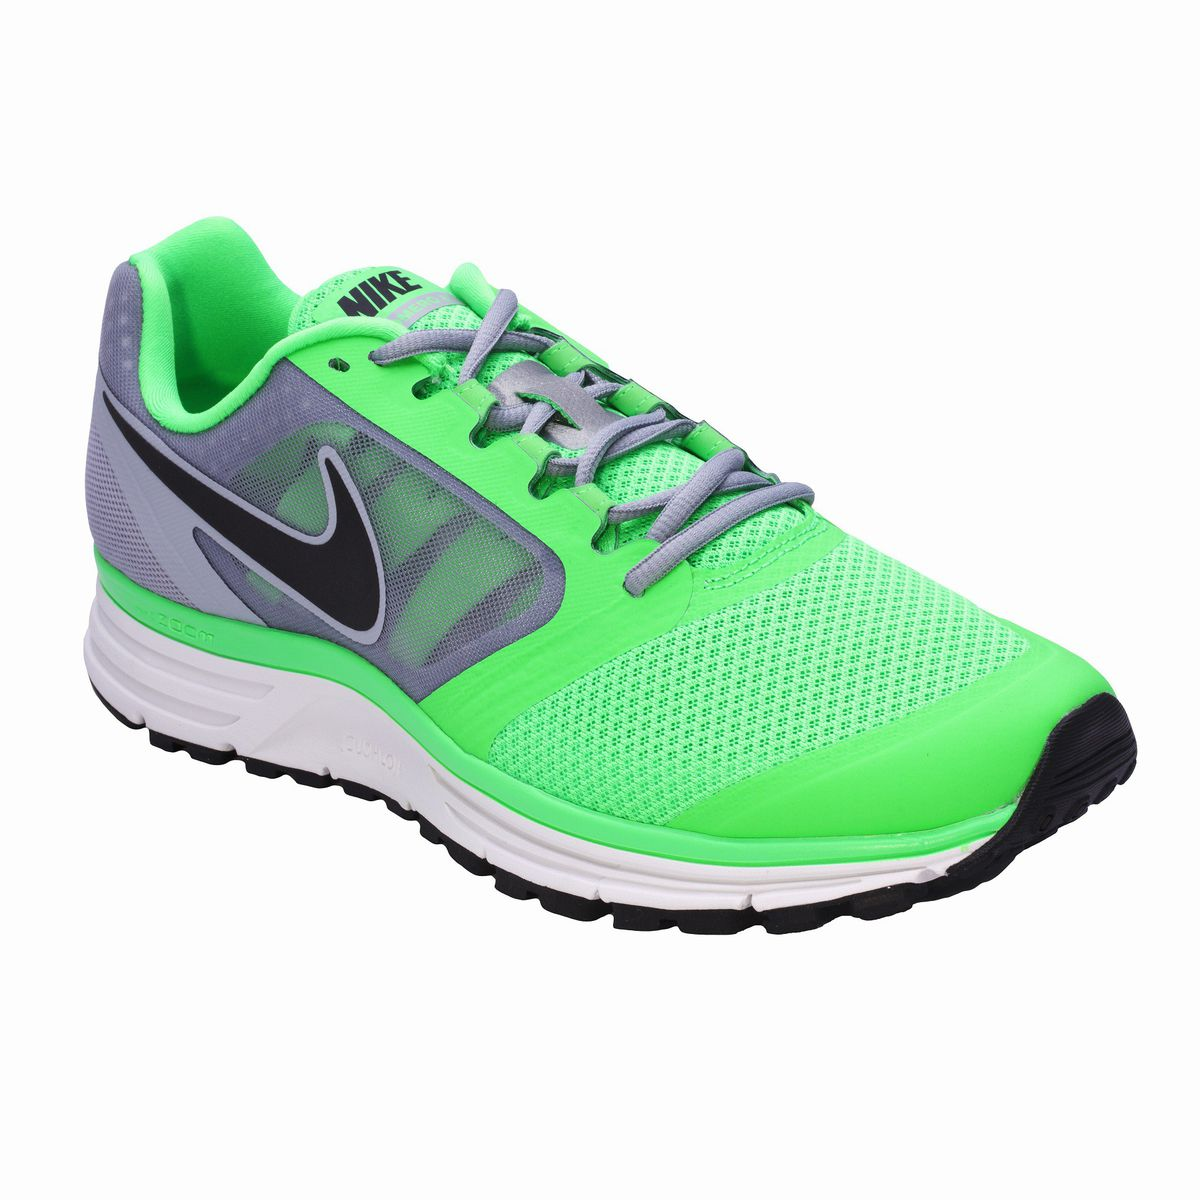 timberland ventes priv es - Mens Nike Zoom Vomero+ 8 Running Shoe | Buy Online in South Africa ...